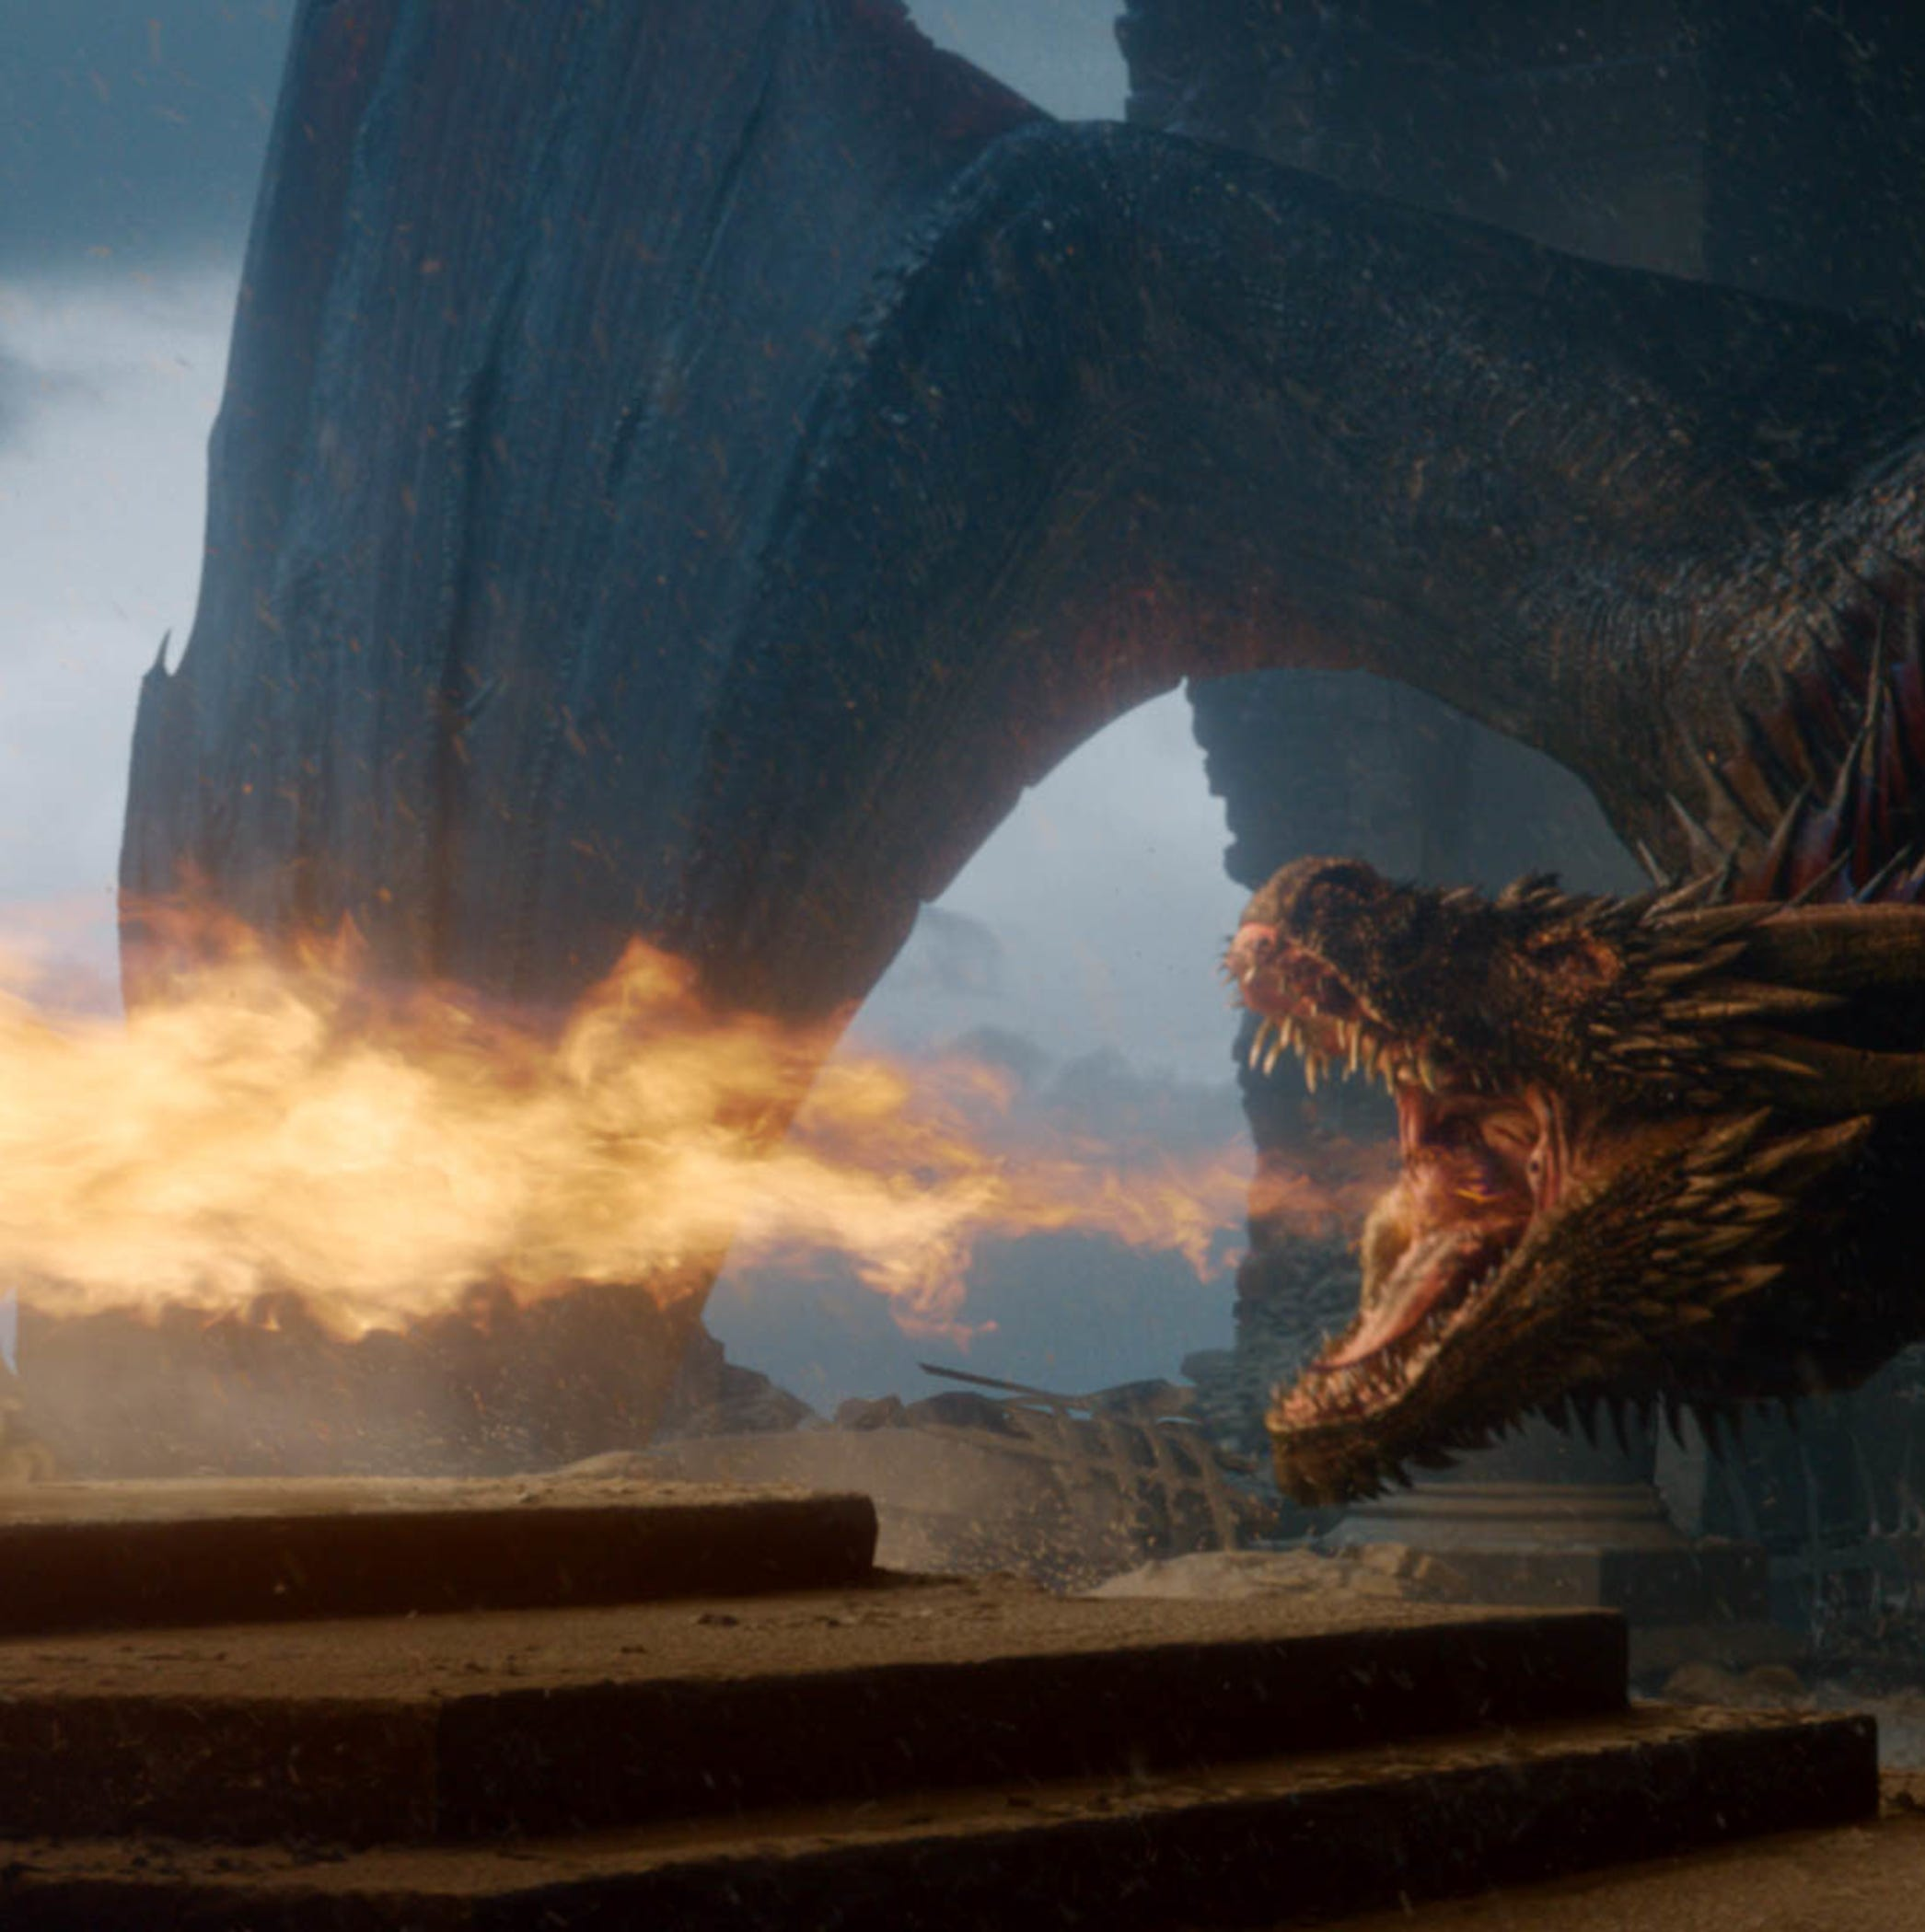 Drogon lets off some steam - and fire - after Dany's death.